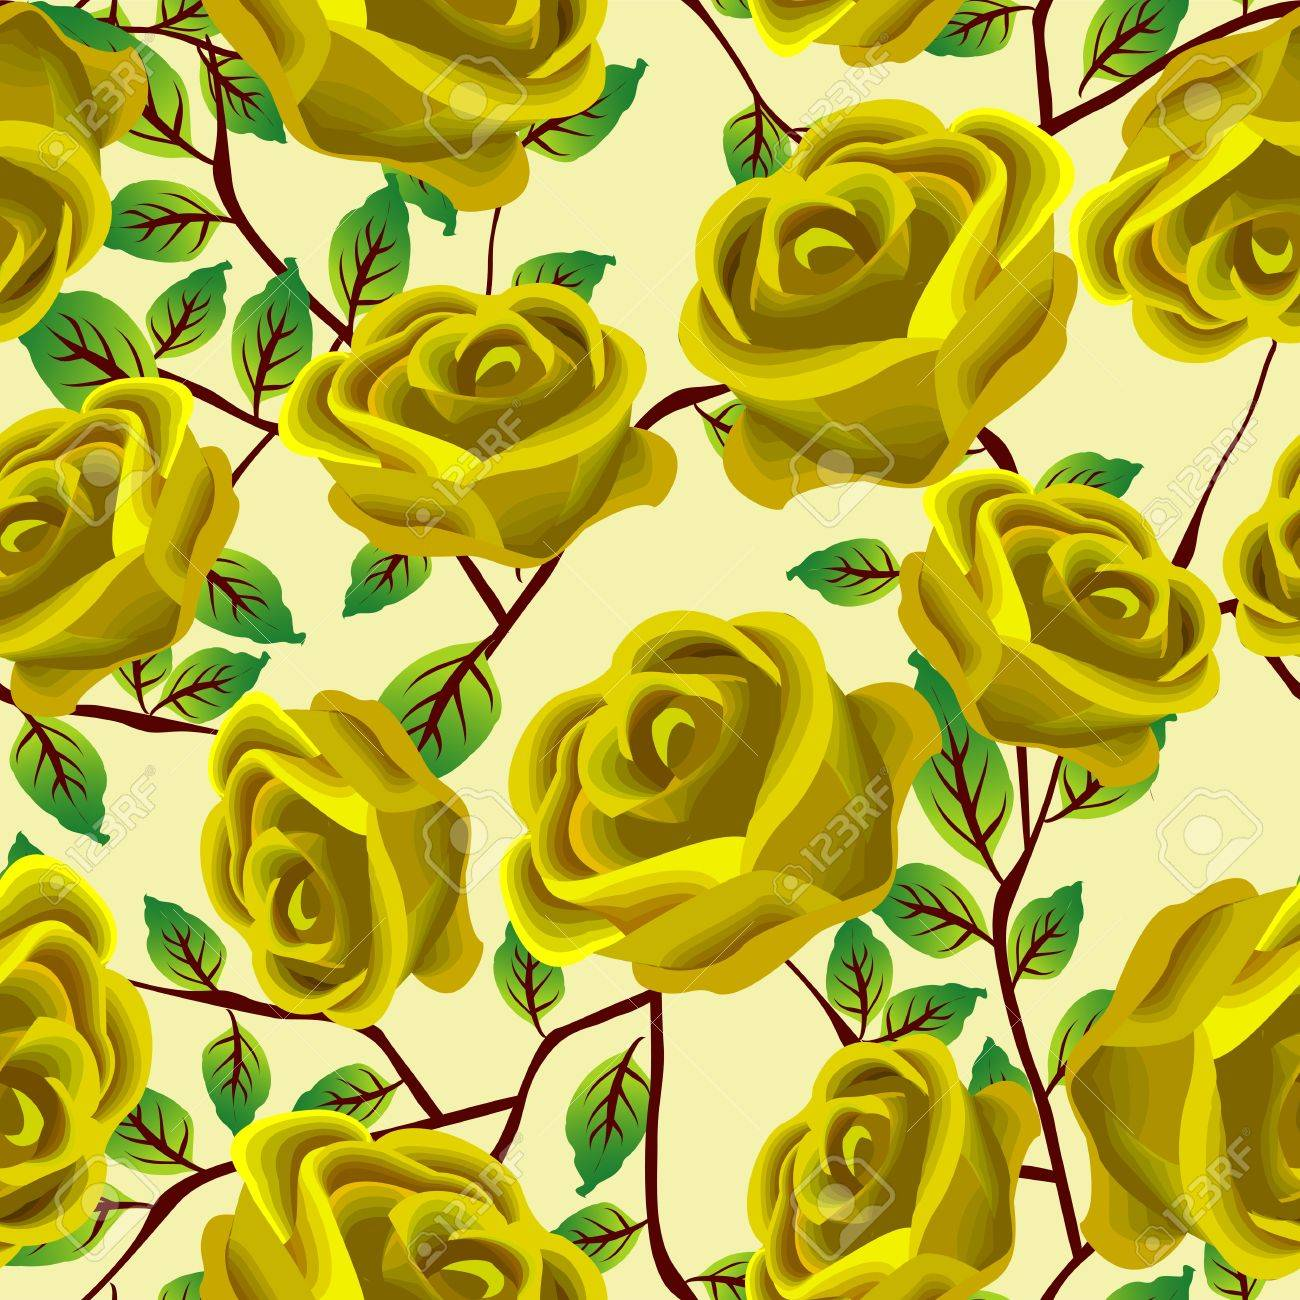 Seamless background design with stylized yellow roses Stock Vector - 8901015